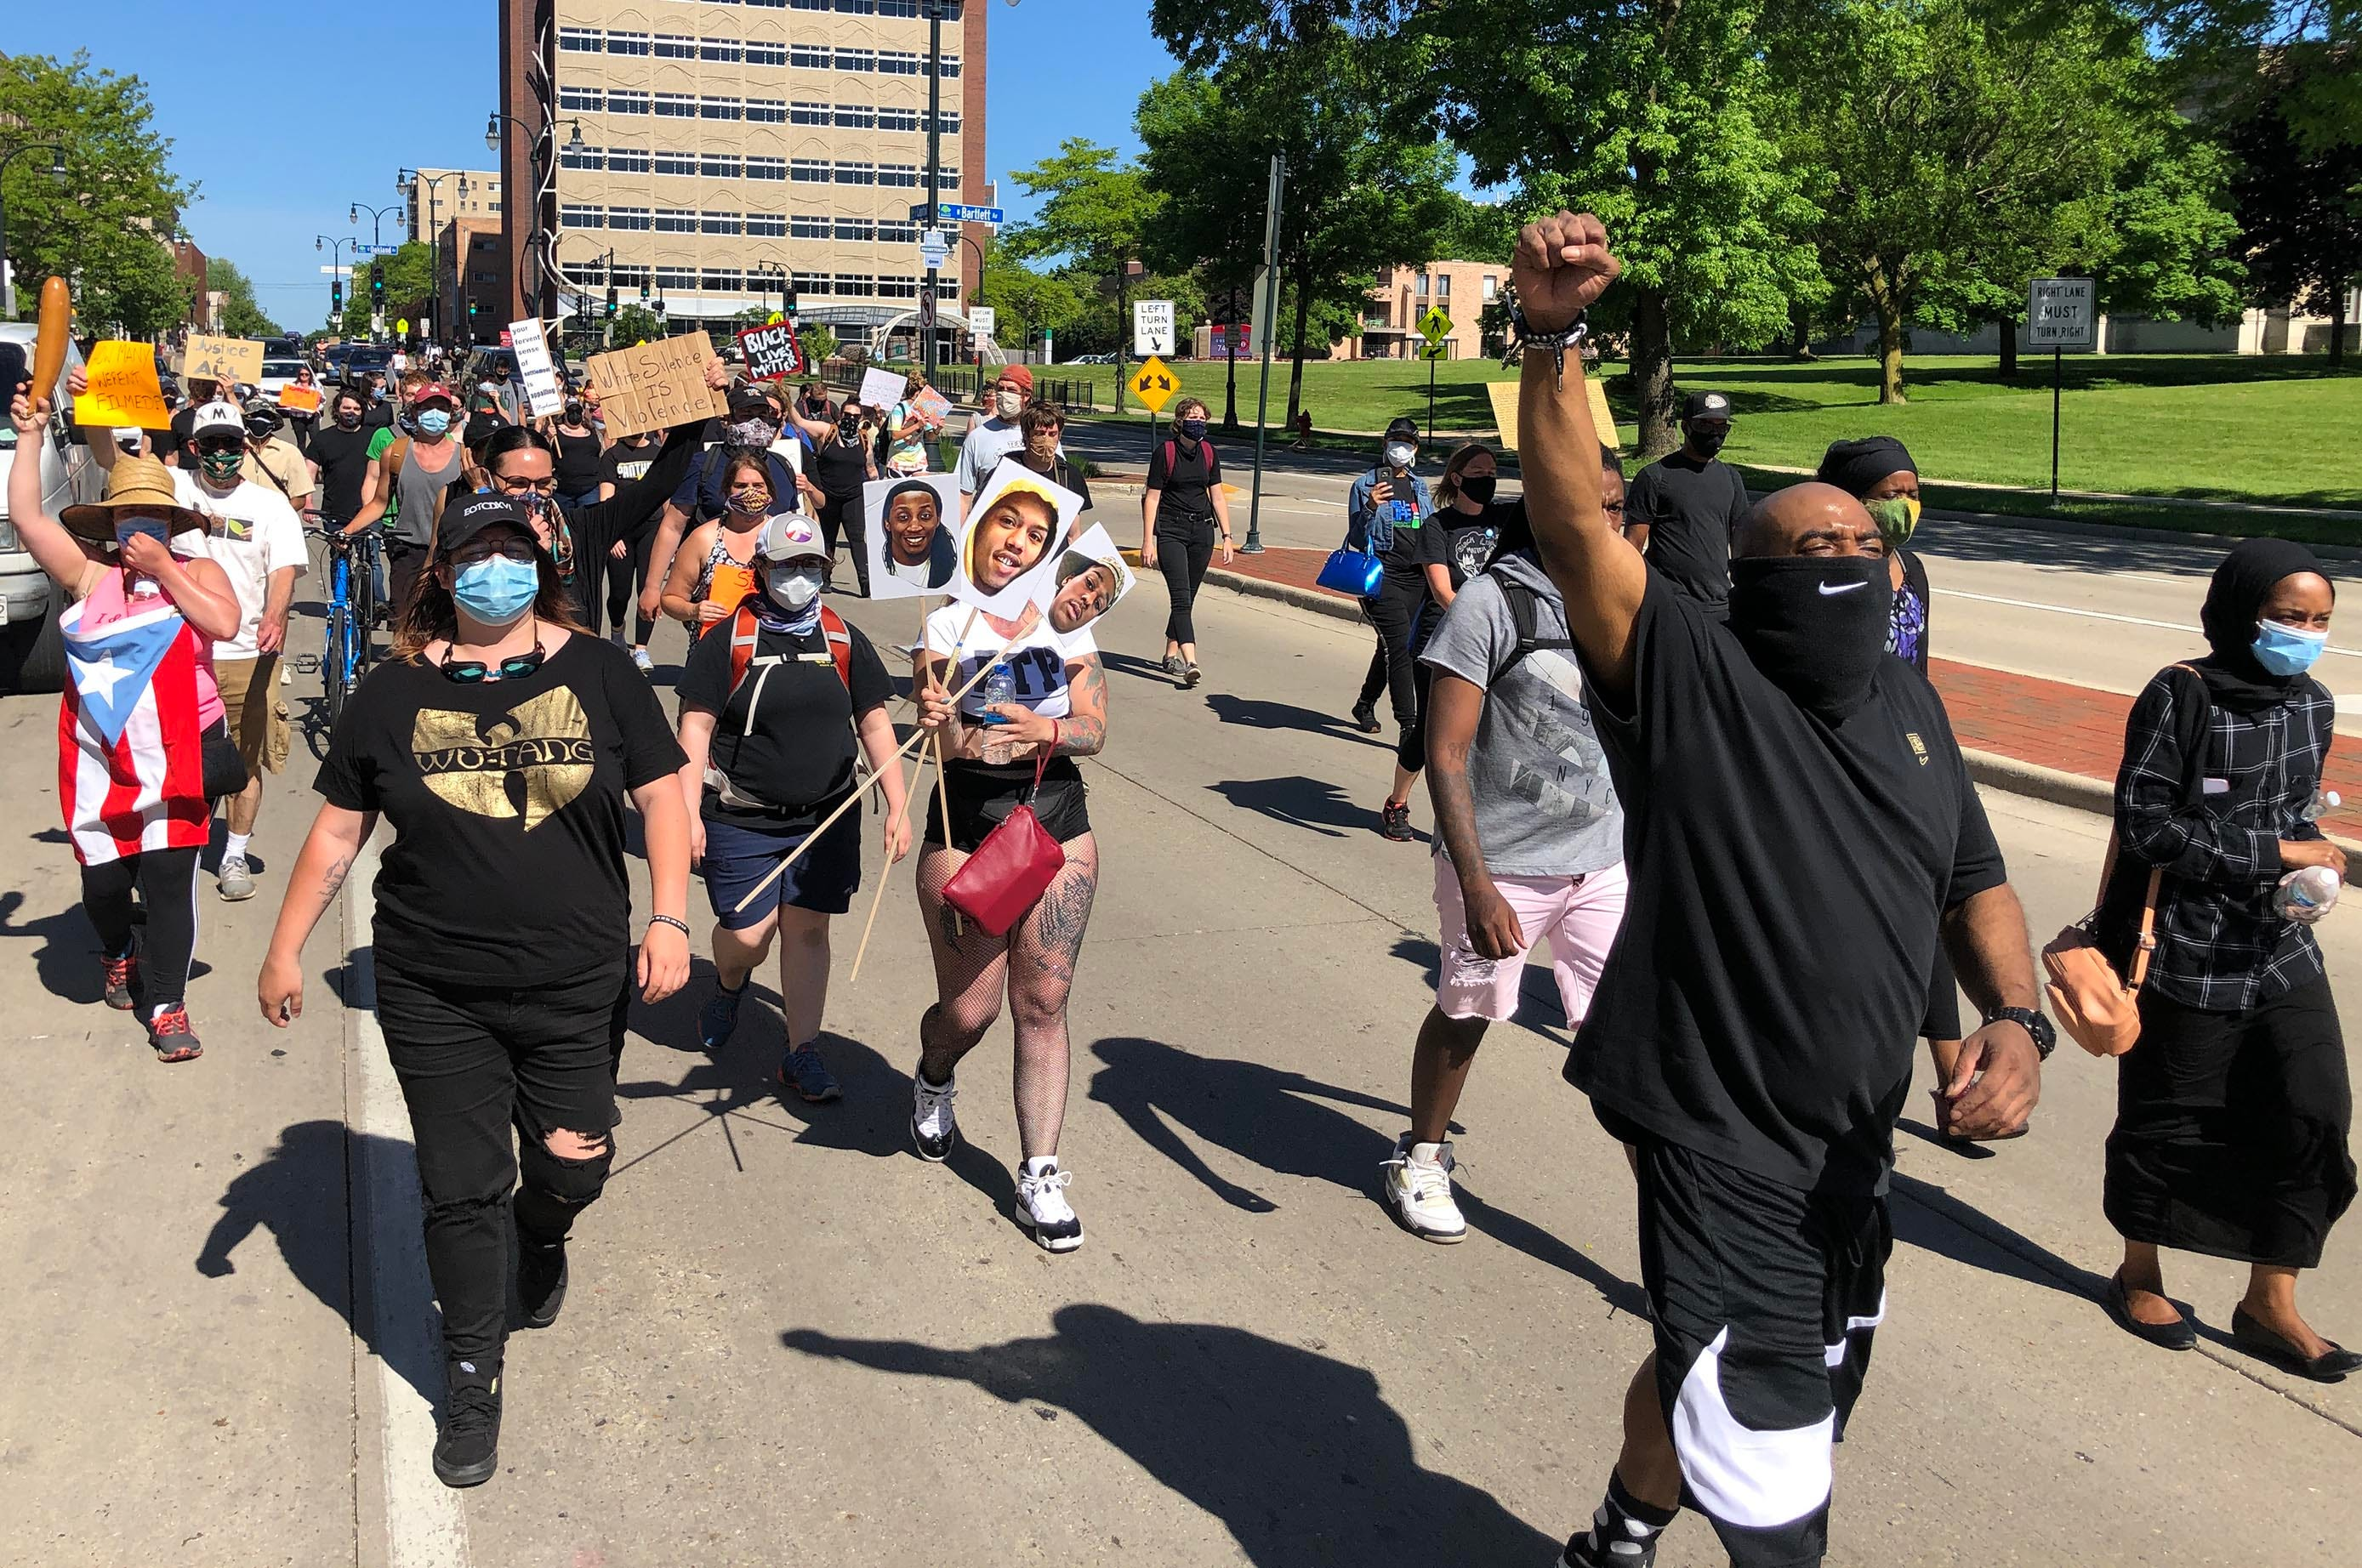 """A group of about 100 protesters chant """"Justice, No Peace,"""" as they march on Capitol Drive between Shorewood and Milwaukee to call attention to racial injustice and to support the Black Lives Matter movement on Monday, June 8, 2020."""